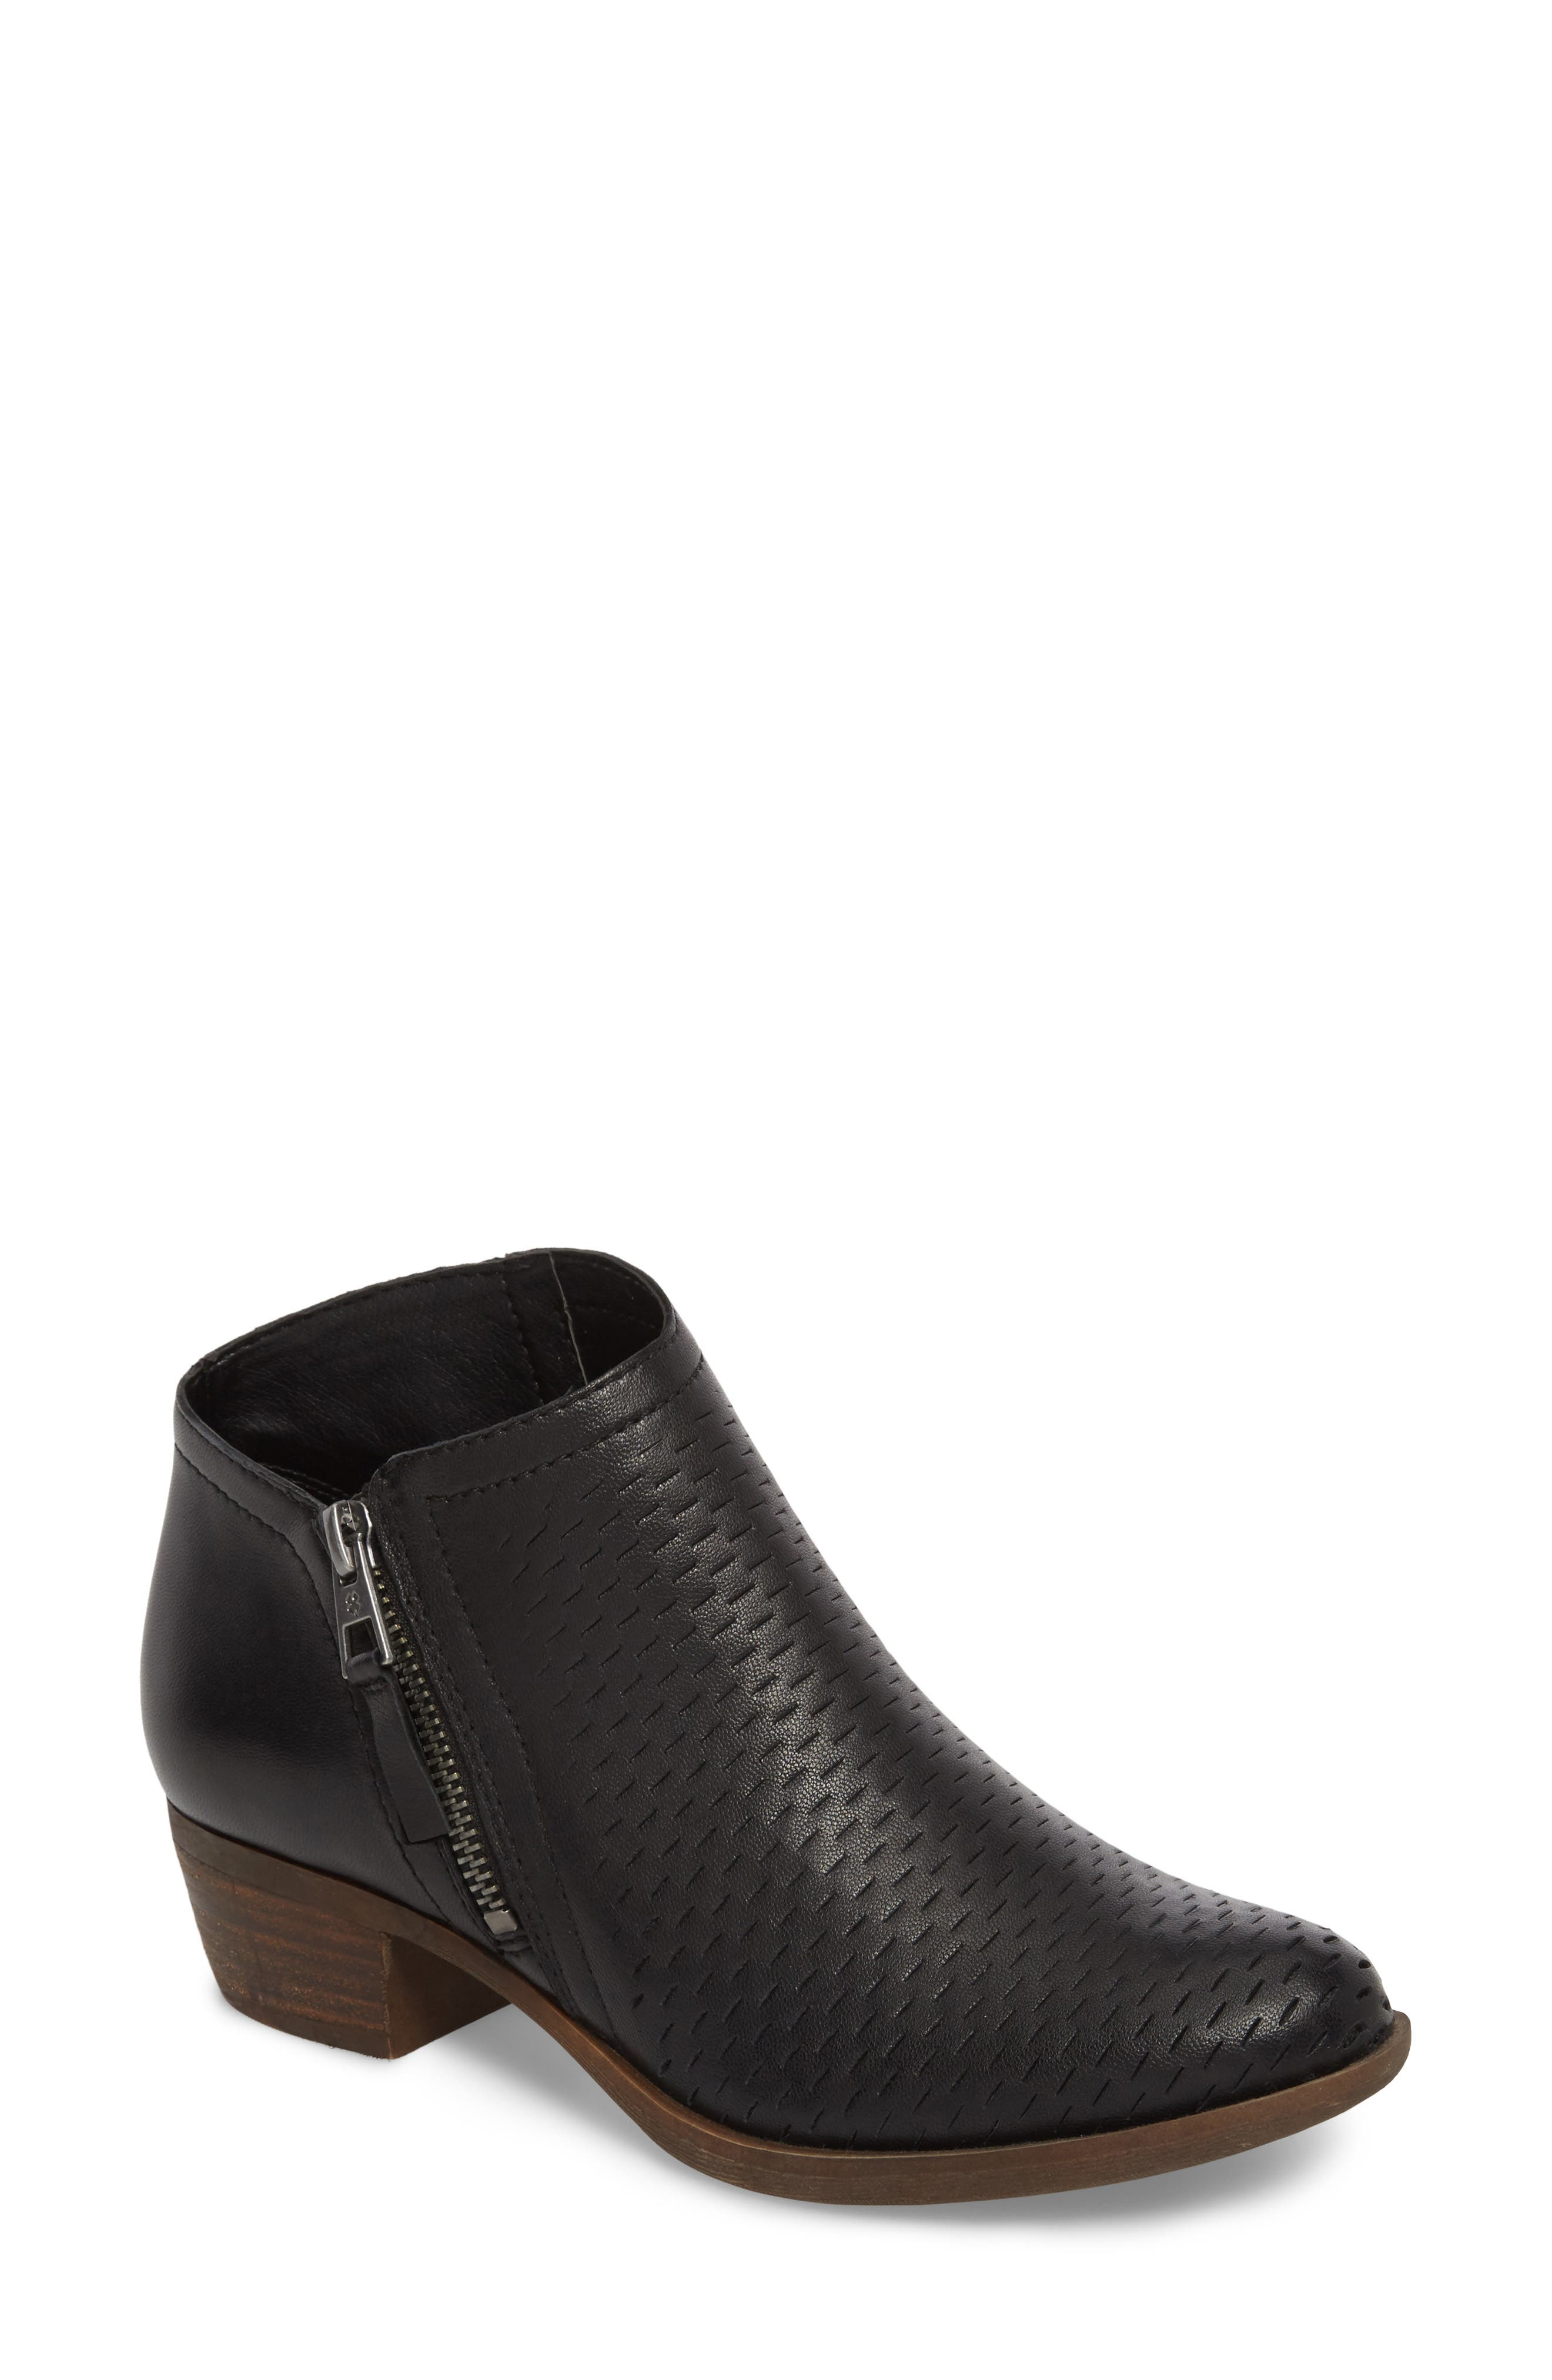 Brielley Perforated Bootie,                             Main thumbnail 1, color,                             002